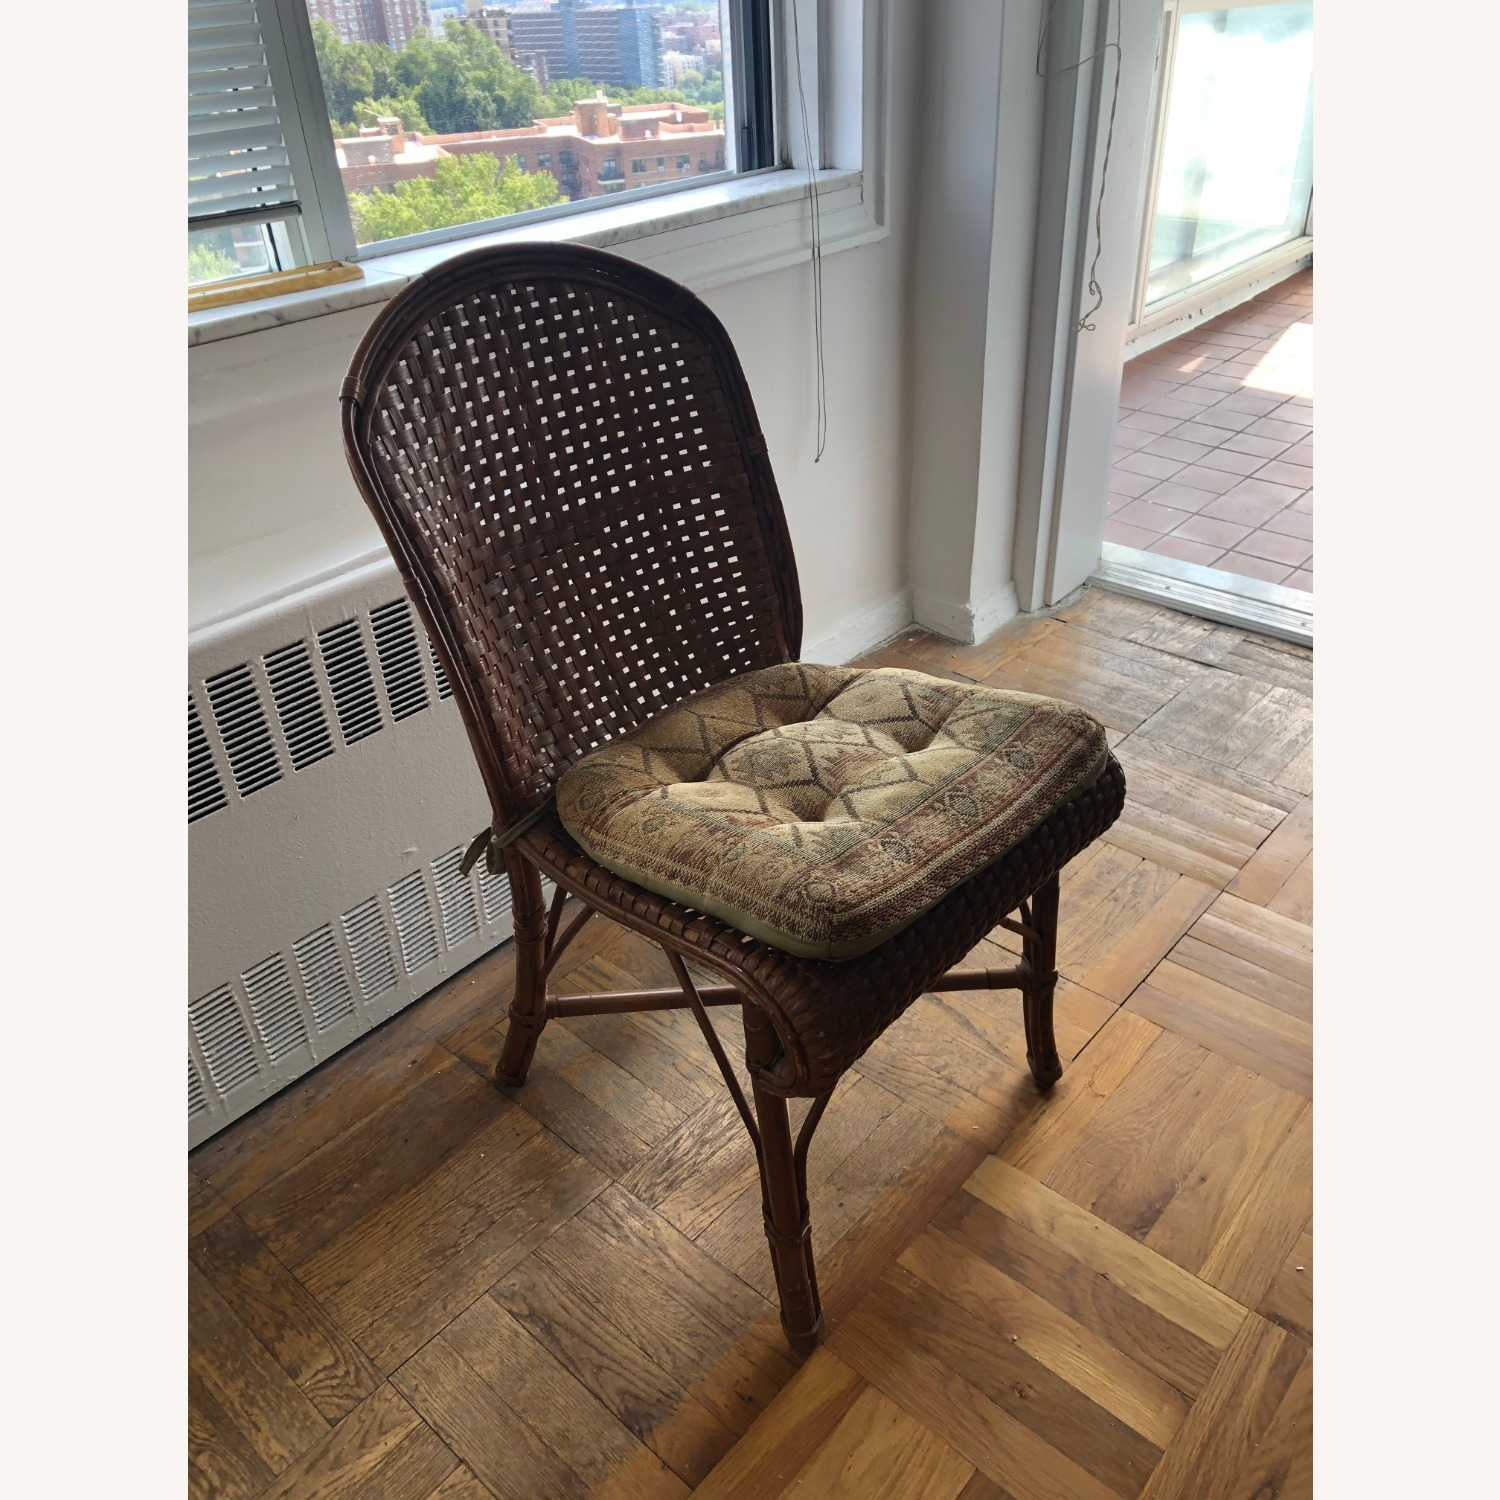 Wicker Dining Room Chairs (Set of 4) with coushins - image-1